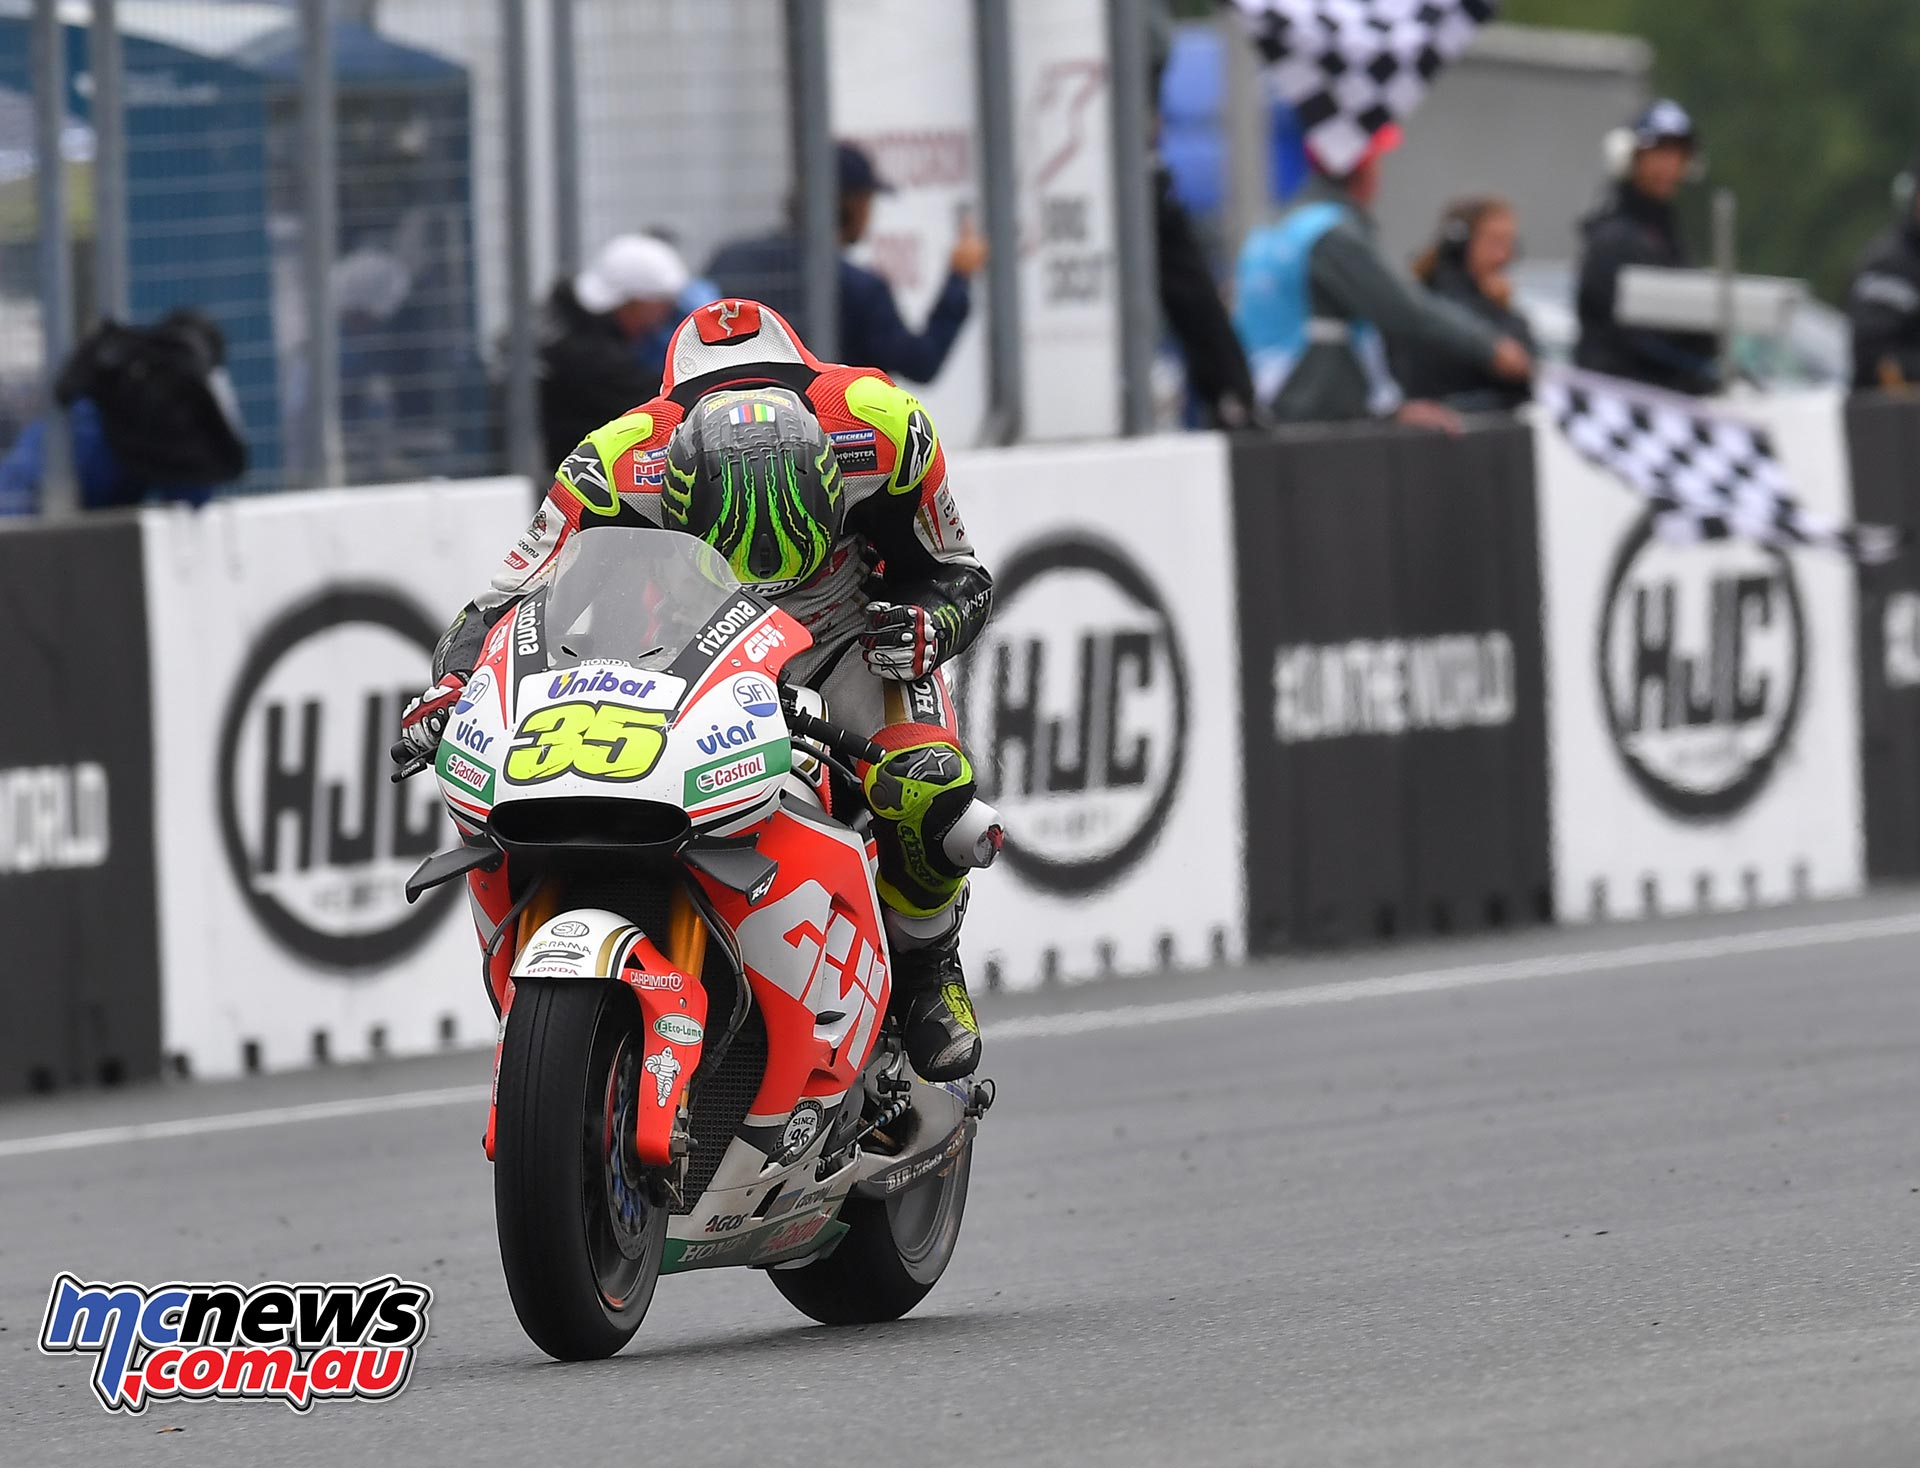 Cal Crutchlow - First Briton in 35 years to win a MotoGP race